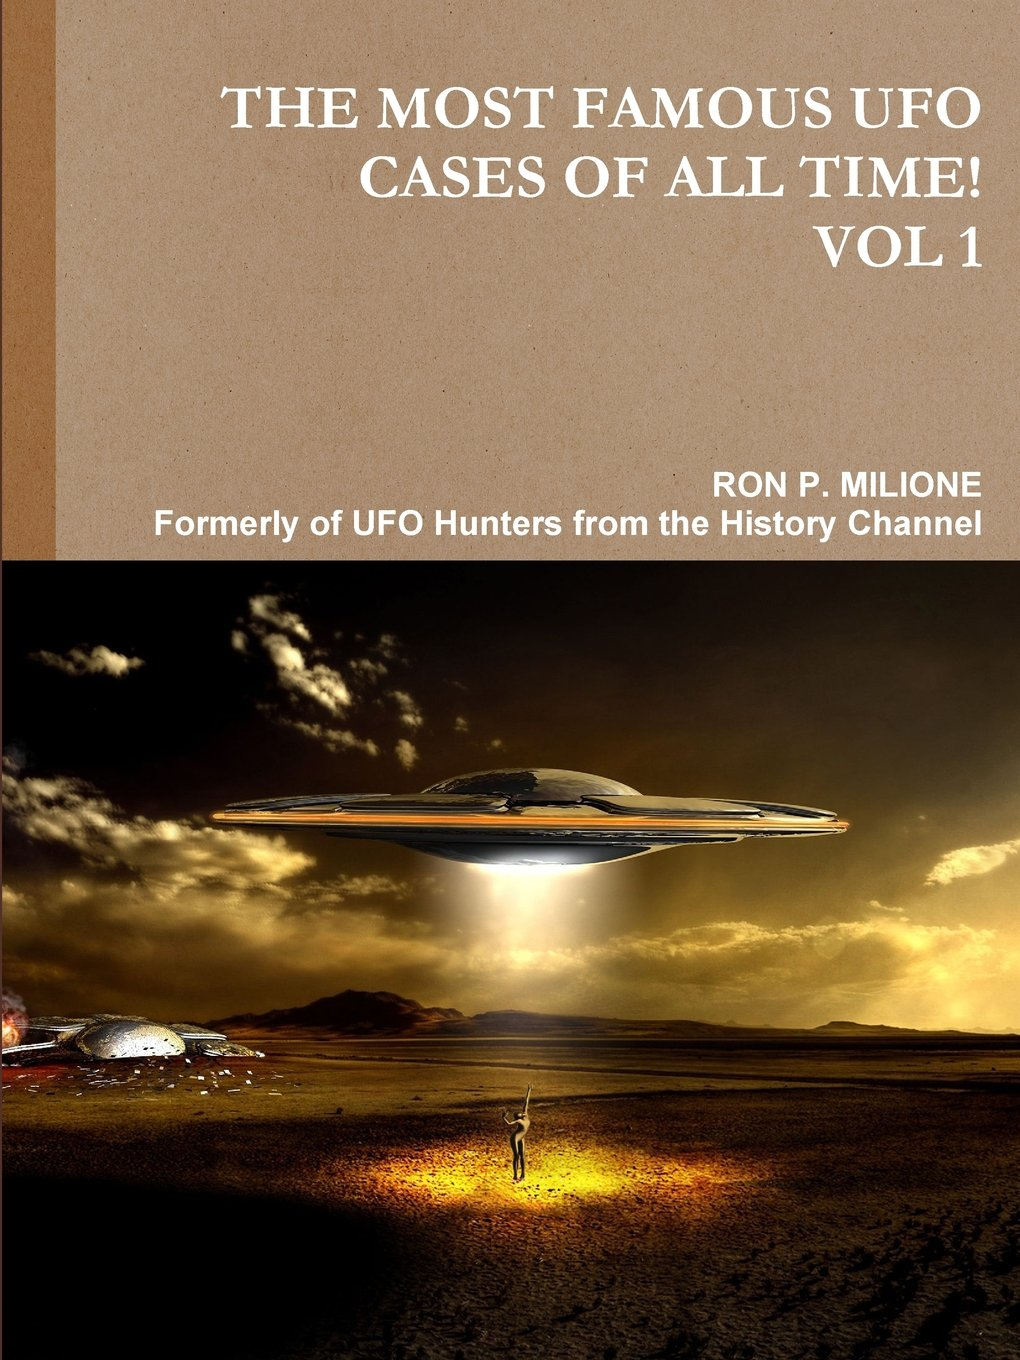 The Most Famous UFO Cases of All Time! Vol 1 ebook